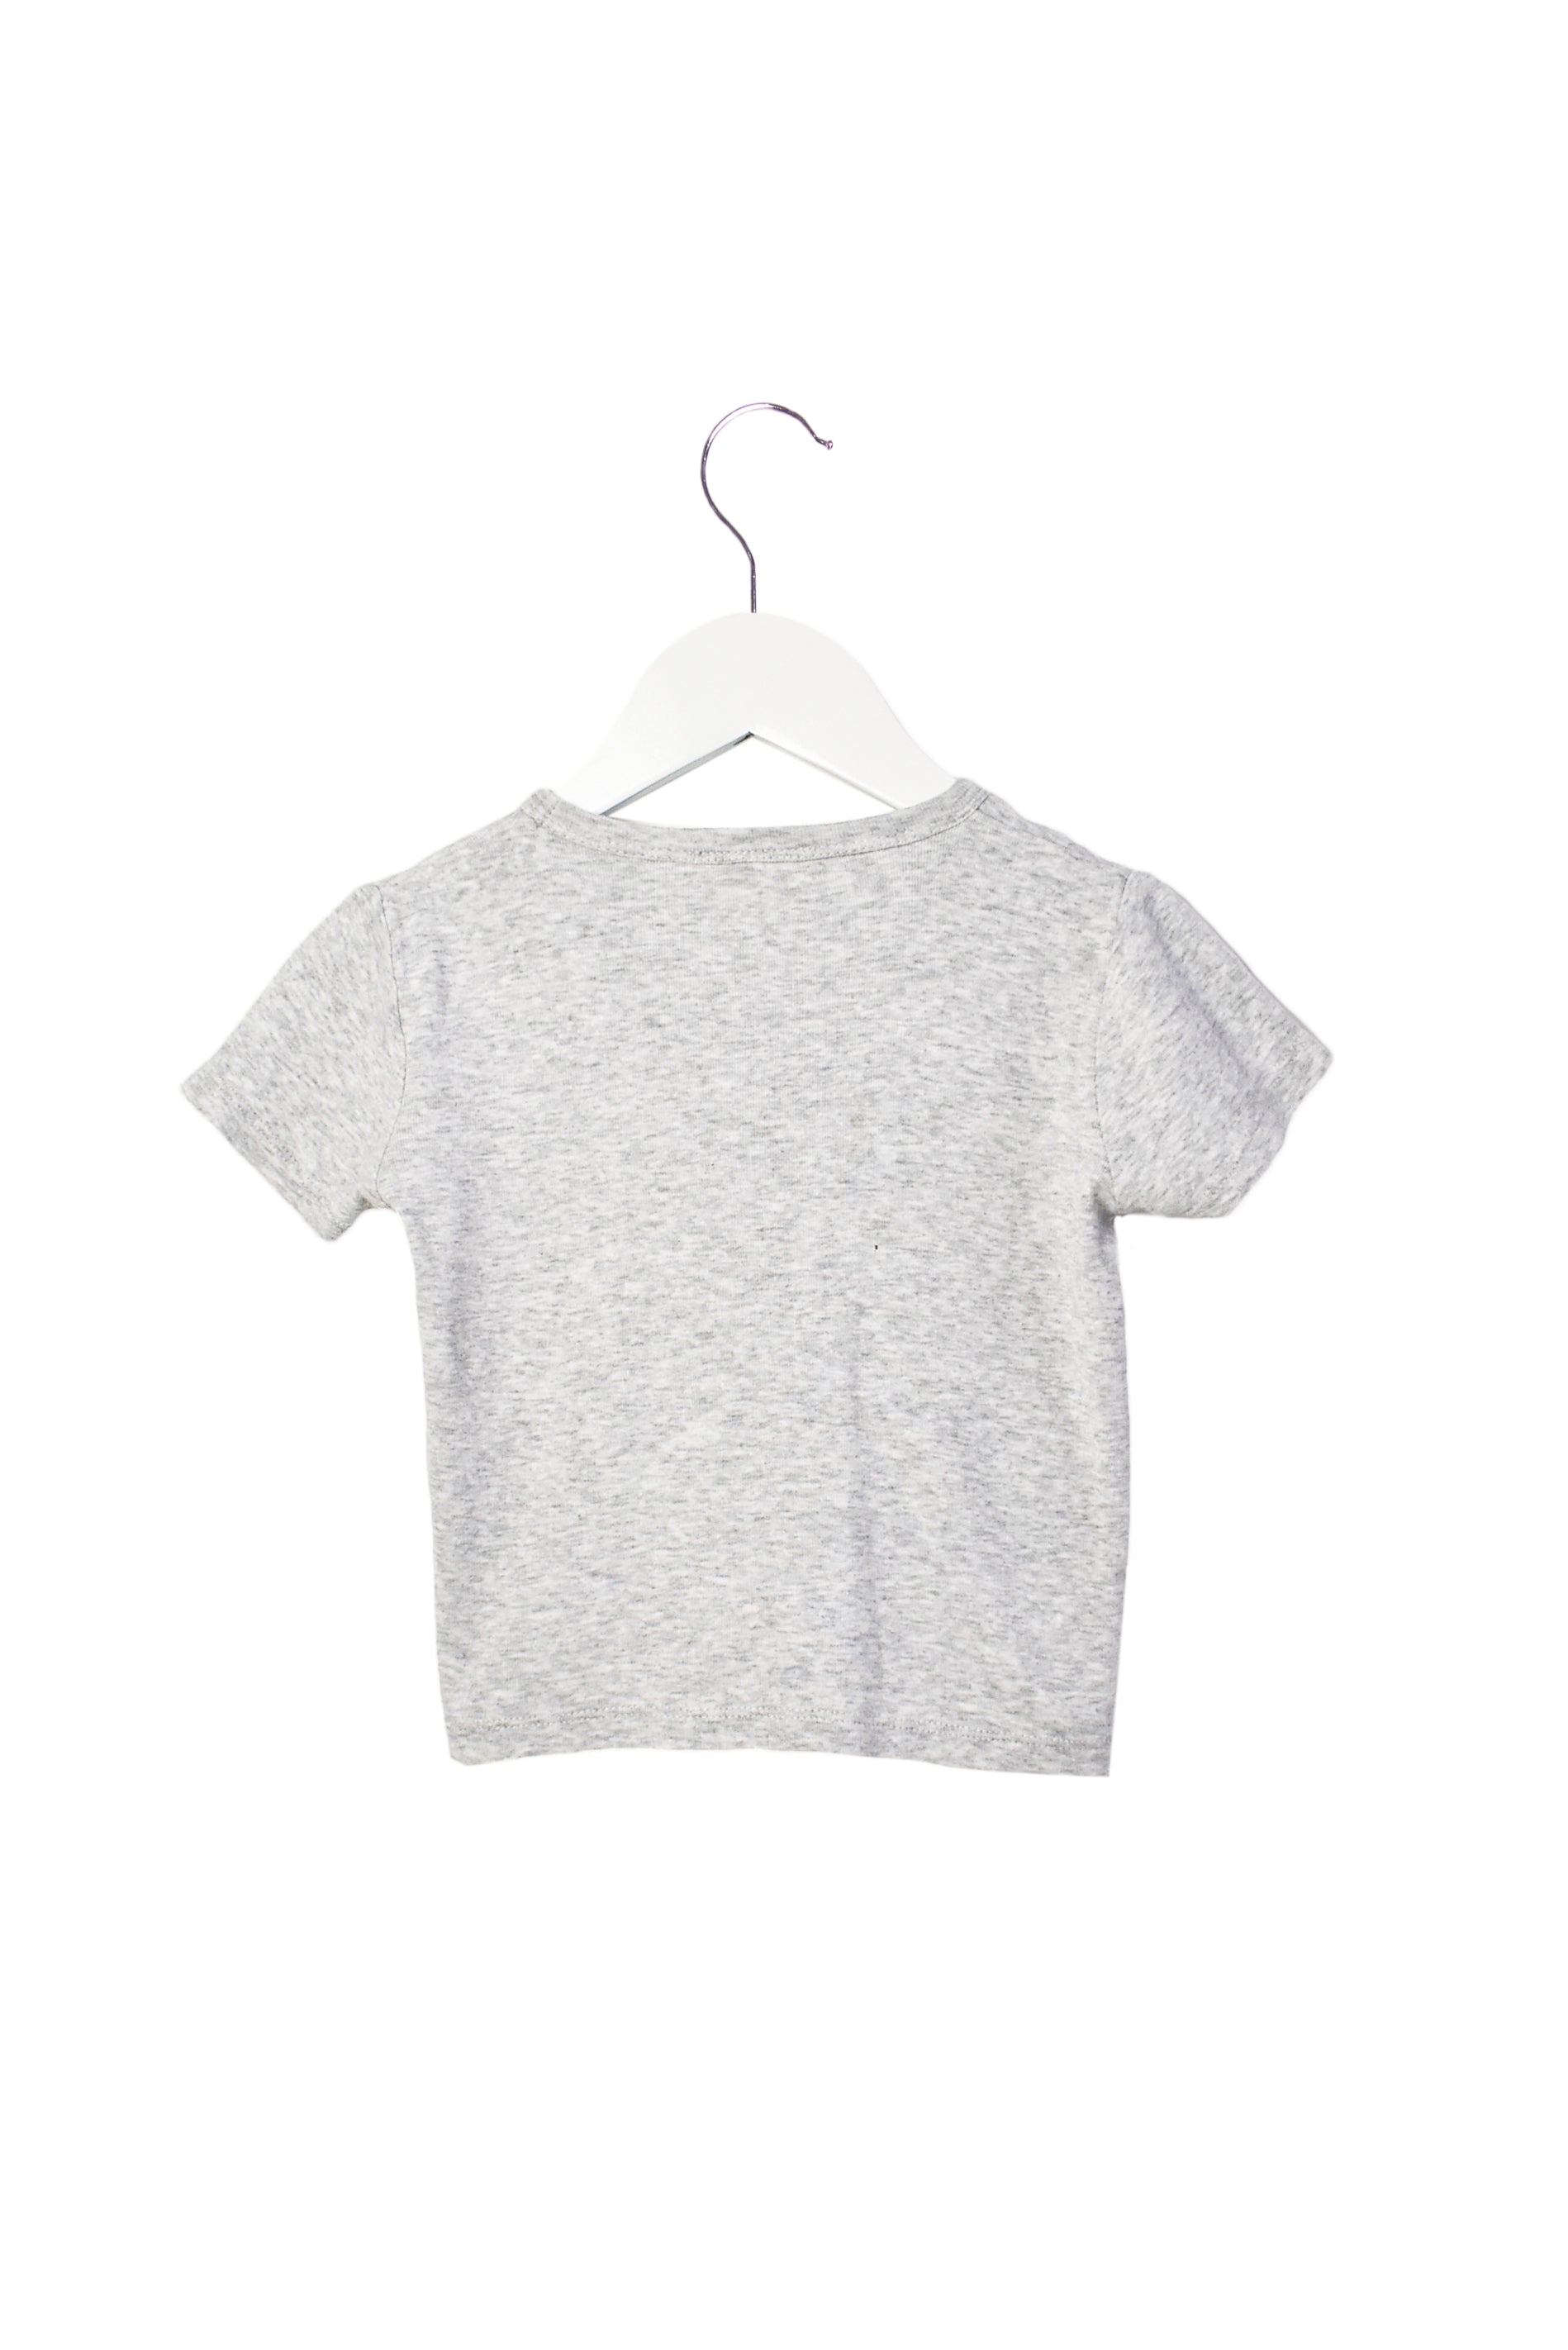 10006354 Seed Kids~T-Shirt 2T, Seed Retykle | Online Baby & Kids Clothing Hong Kong